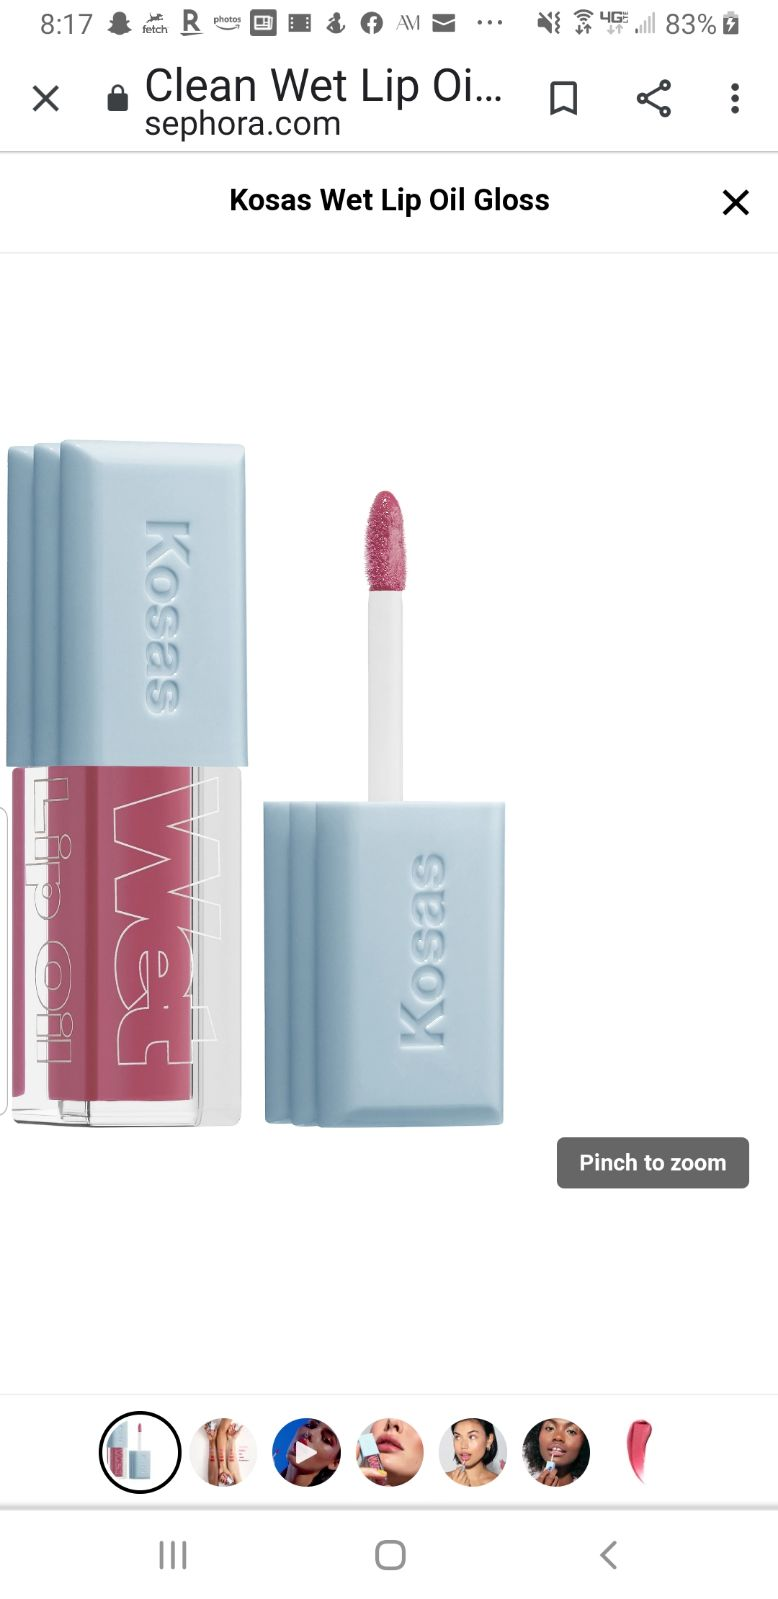 Kosas Kosas Wet Lip Oil Gloss in Malibu